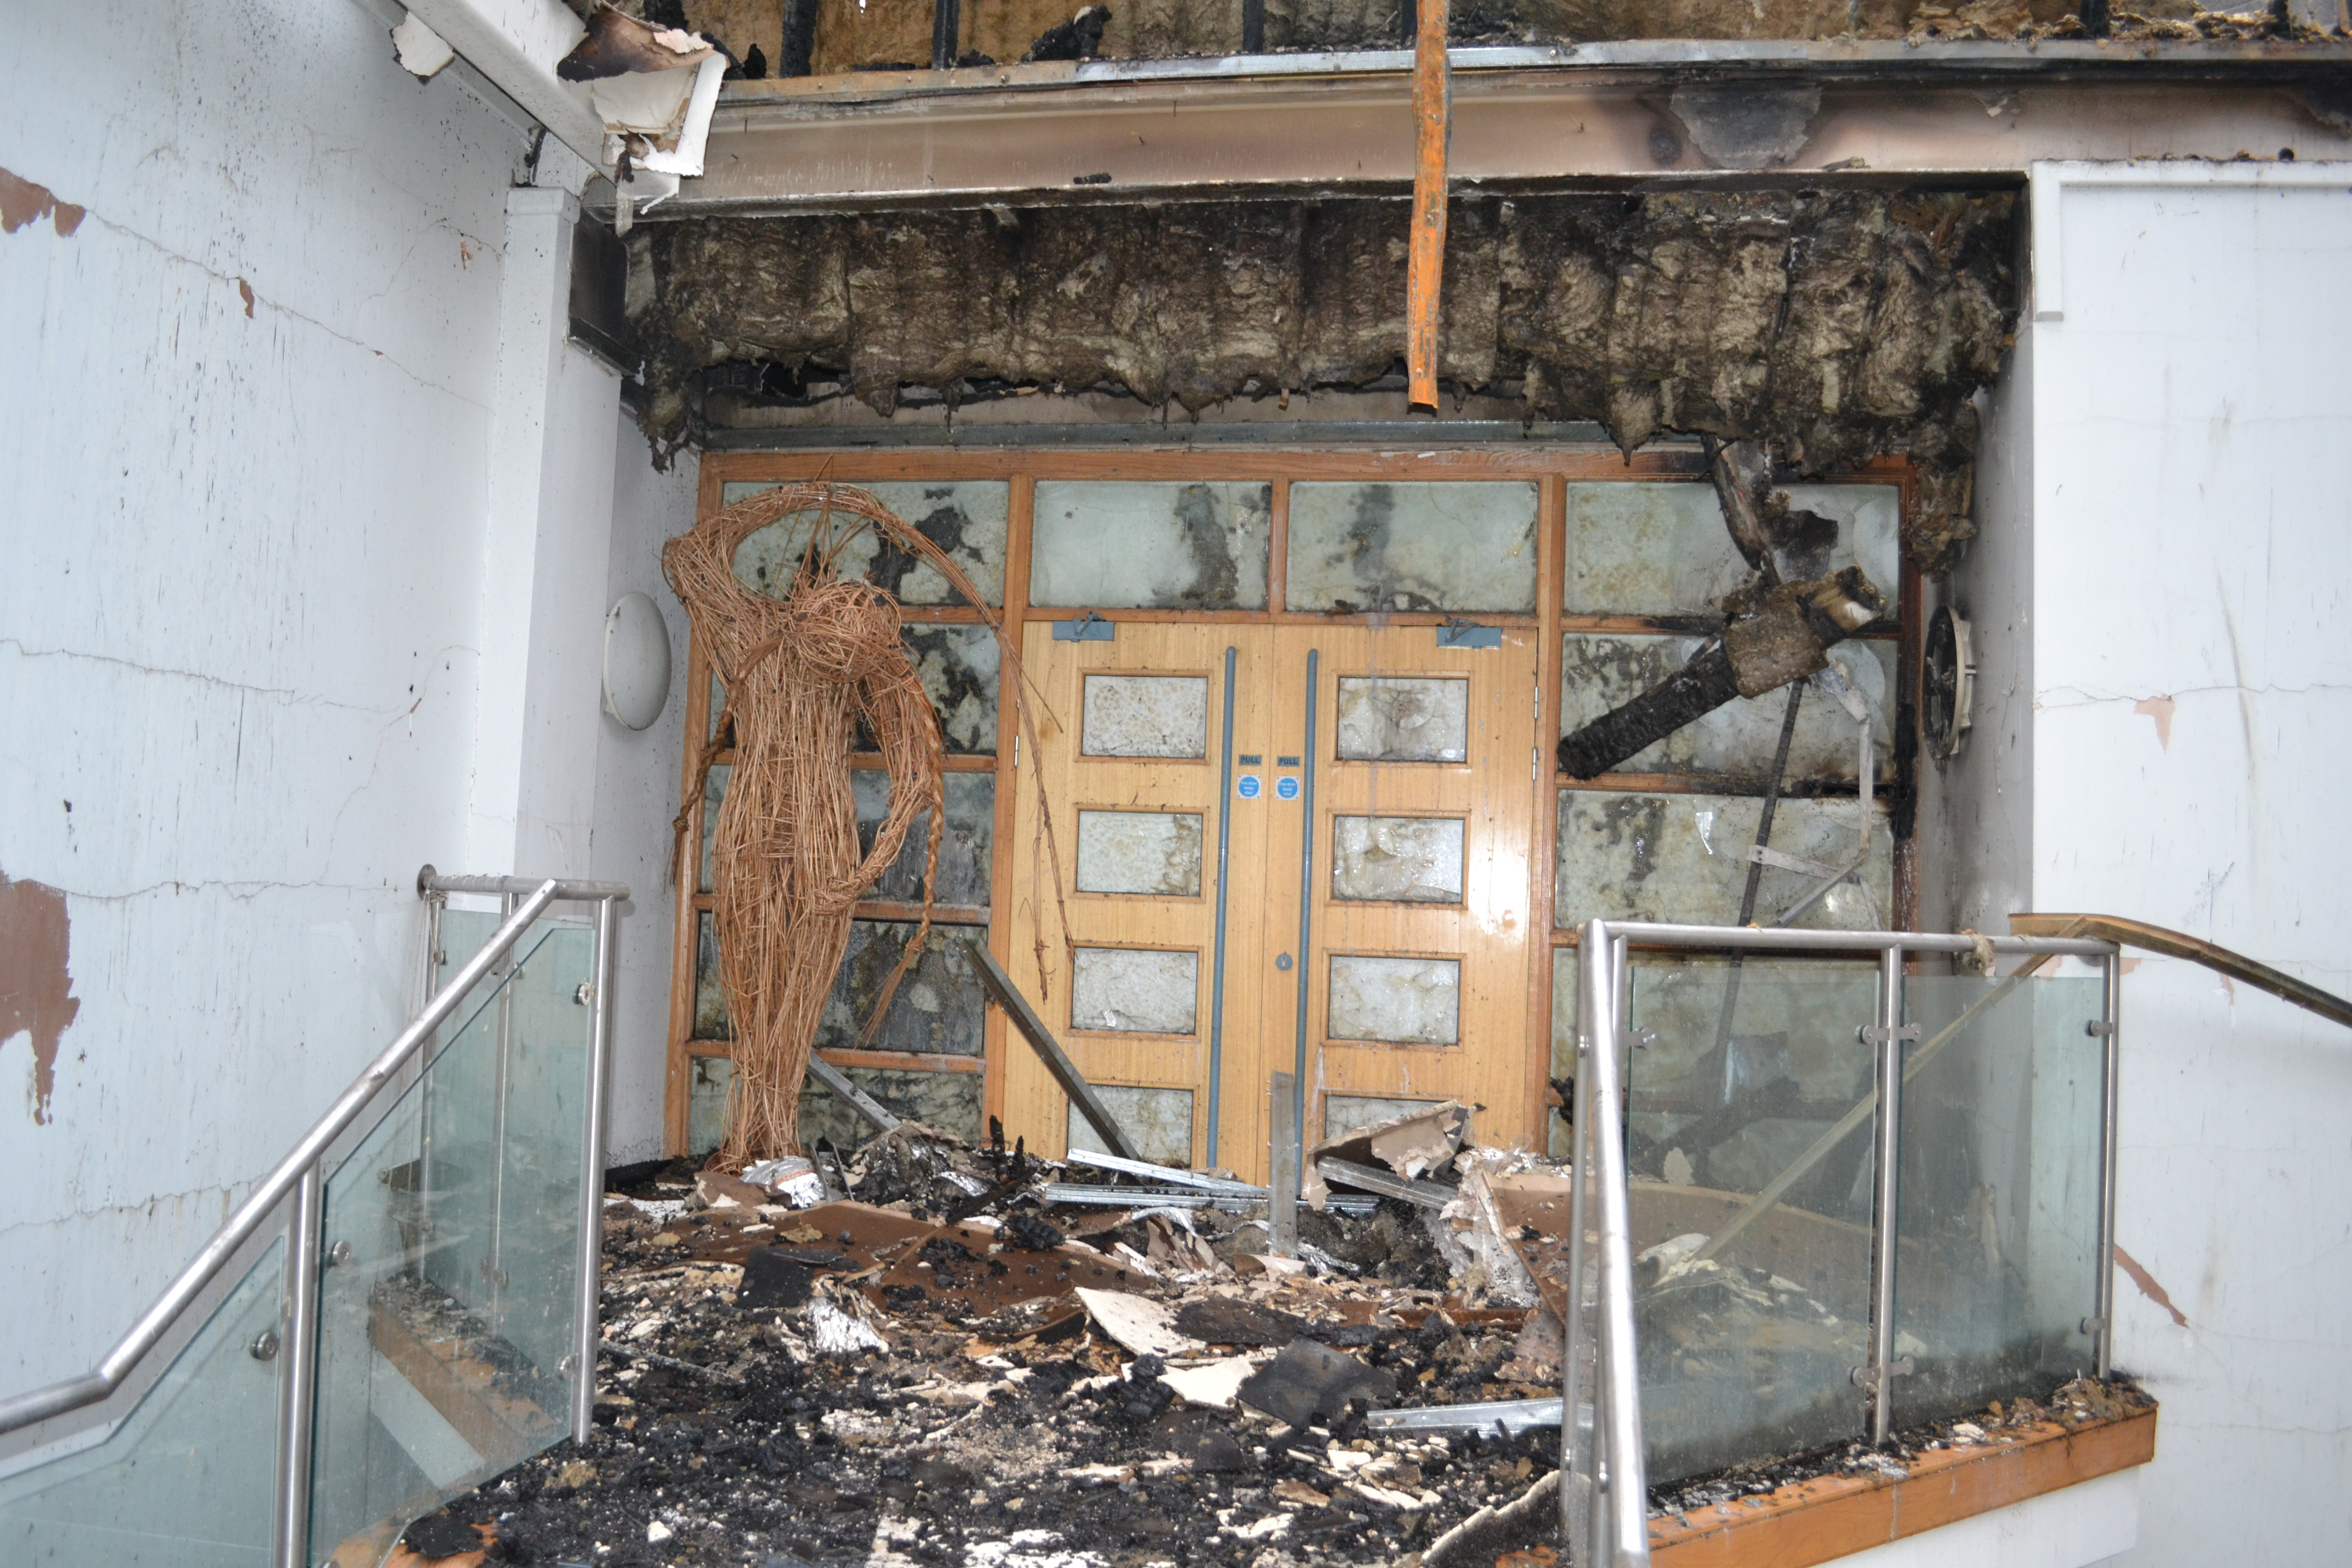 Fire doors hold back fire in school : dramatic pictures